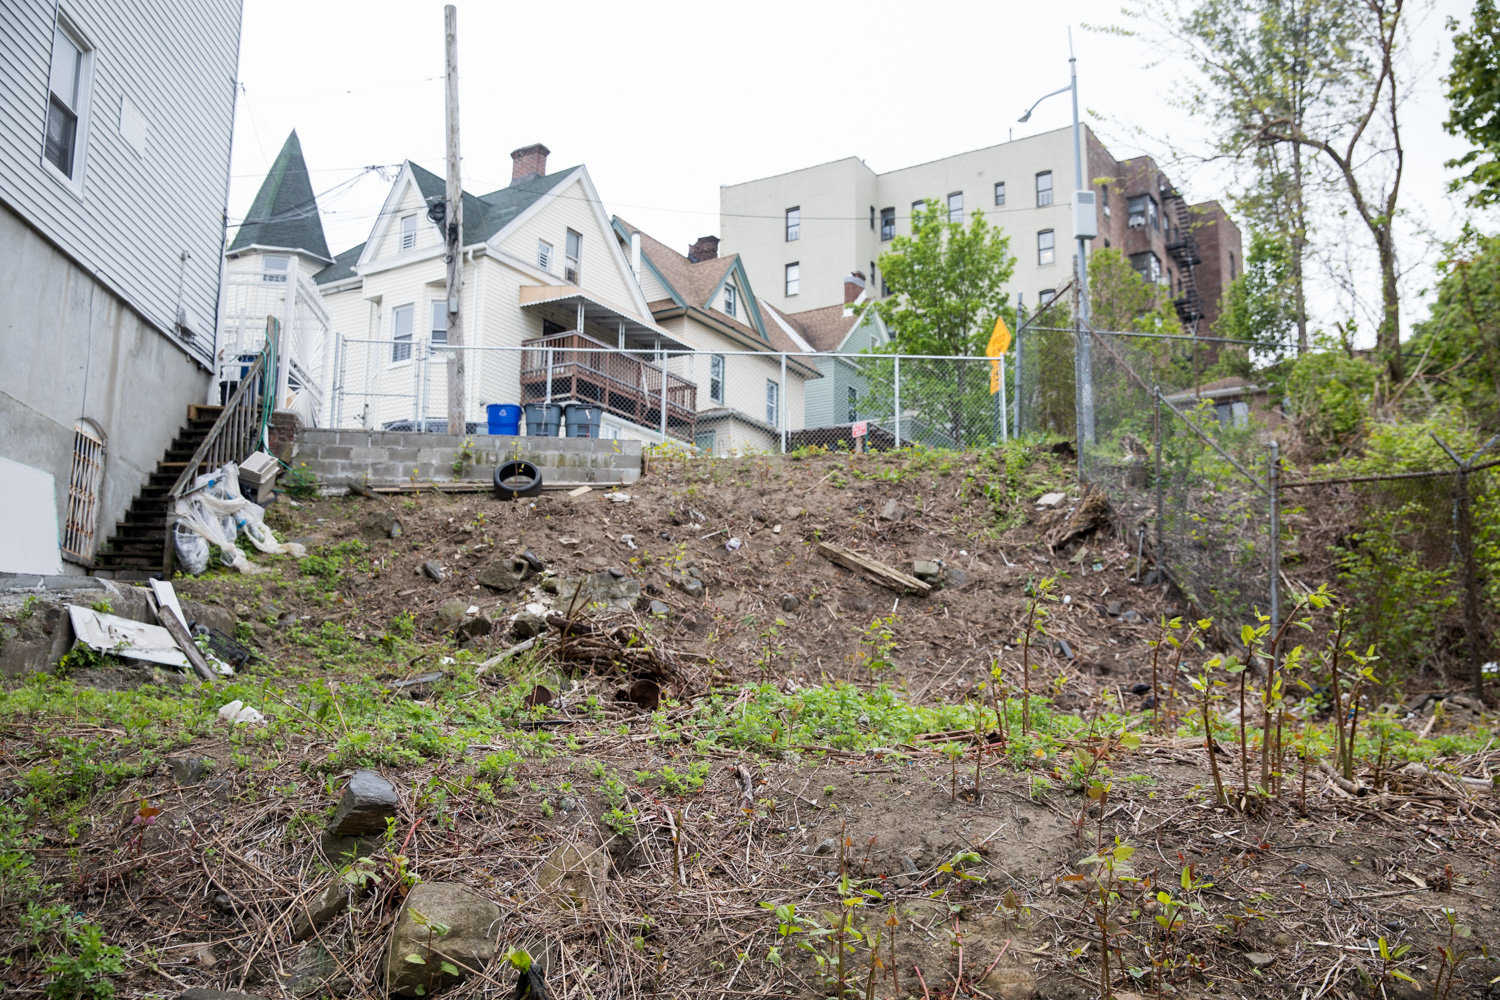 It's nothing but bramble and patches of grass on the empty lot at 7-15 Terrace View Ave. But if one developer is successful, — and that's a big if — it could become the site of a new seven-story apartment building in the Marble Hill neighborhood.